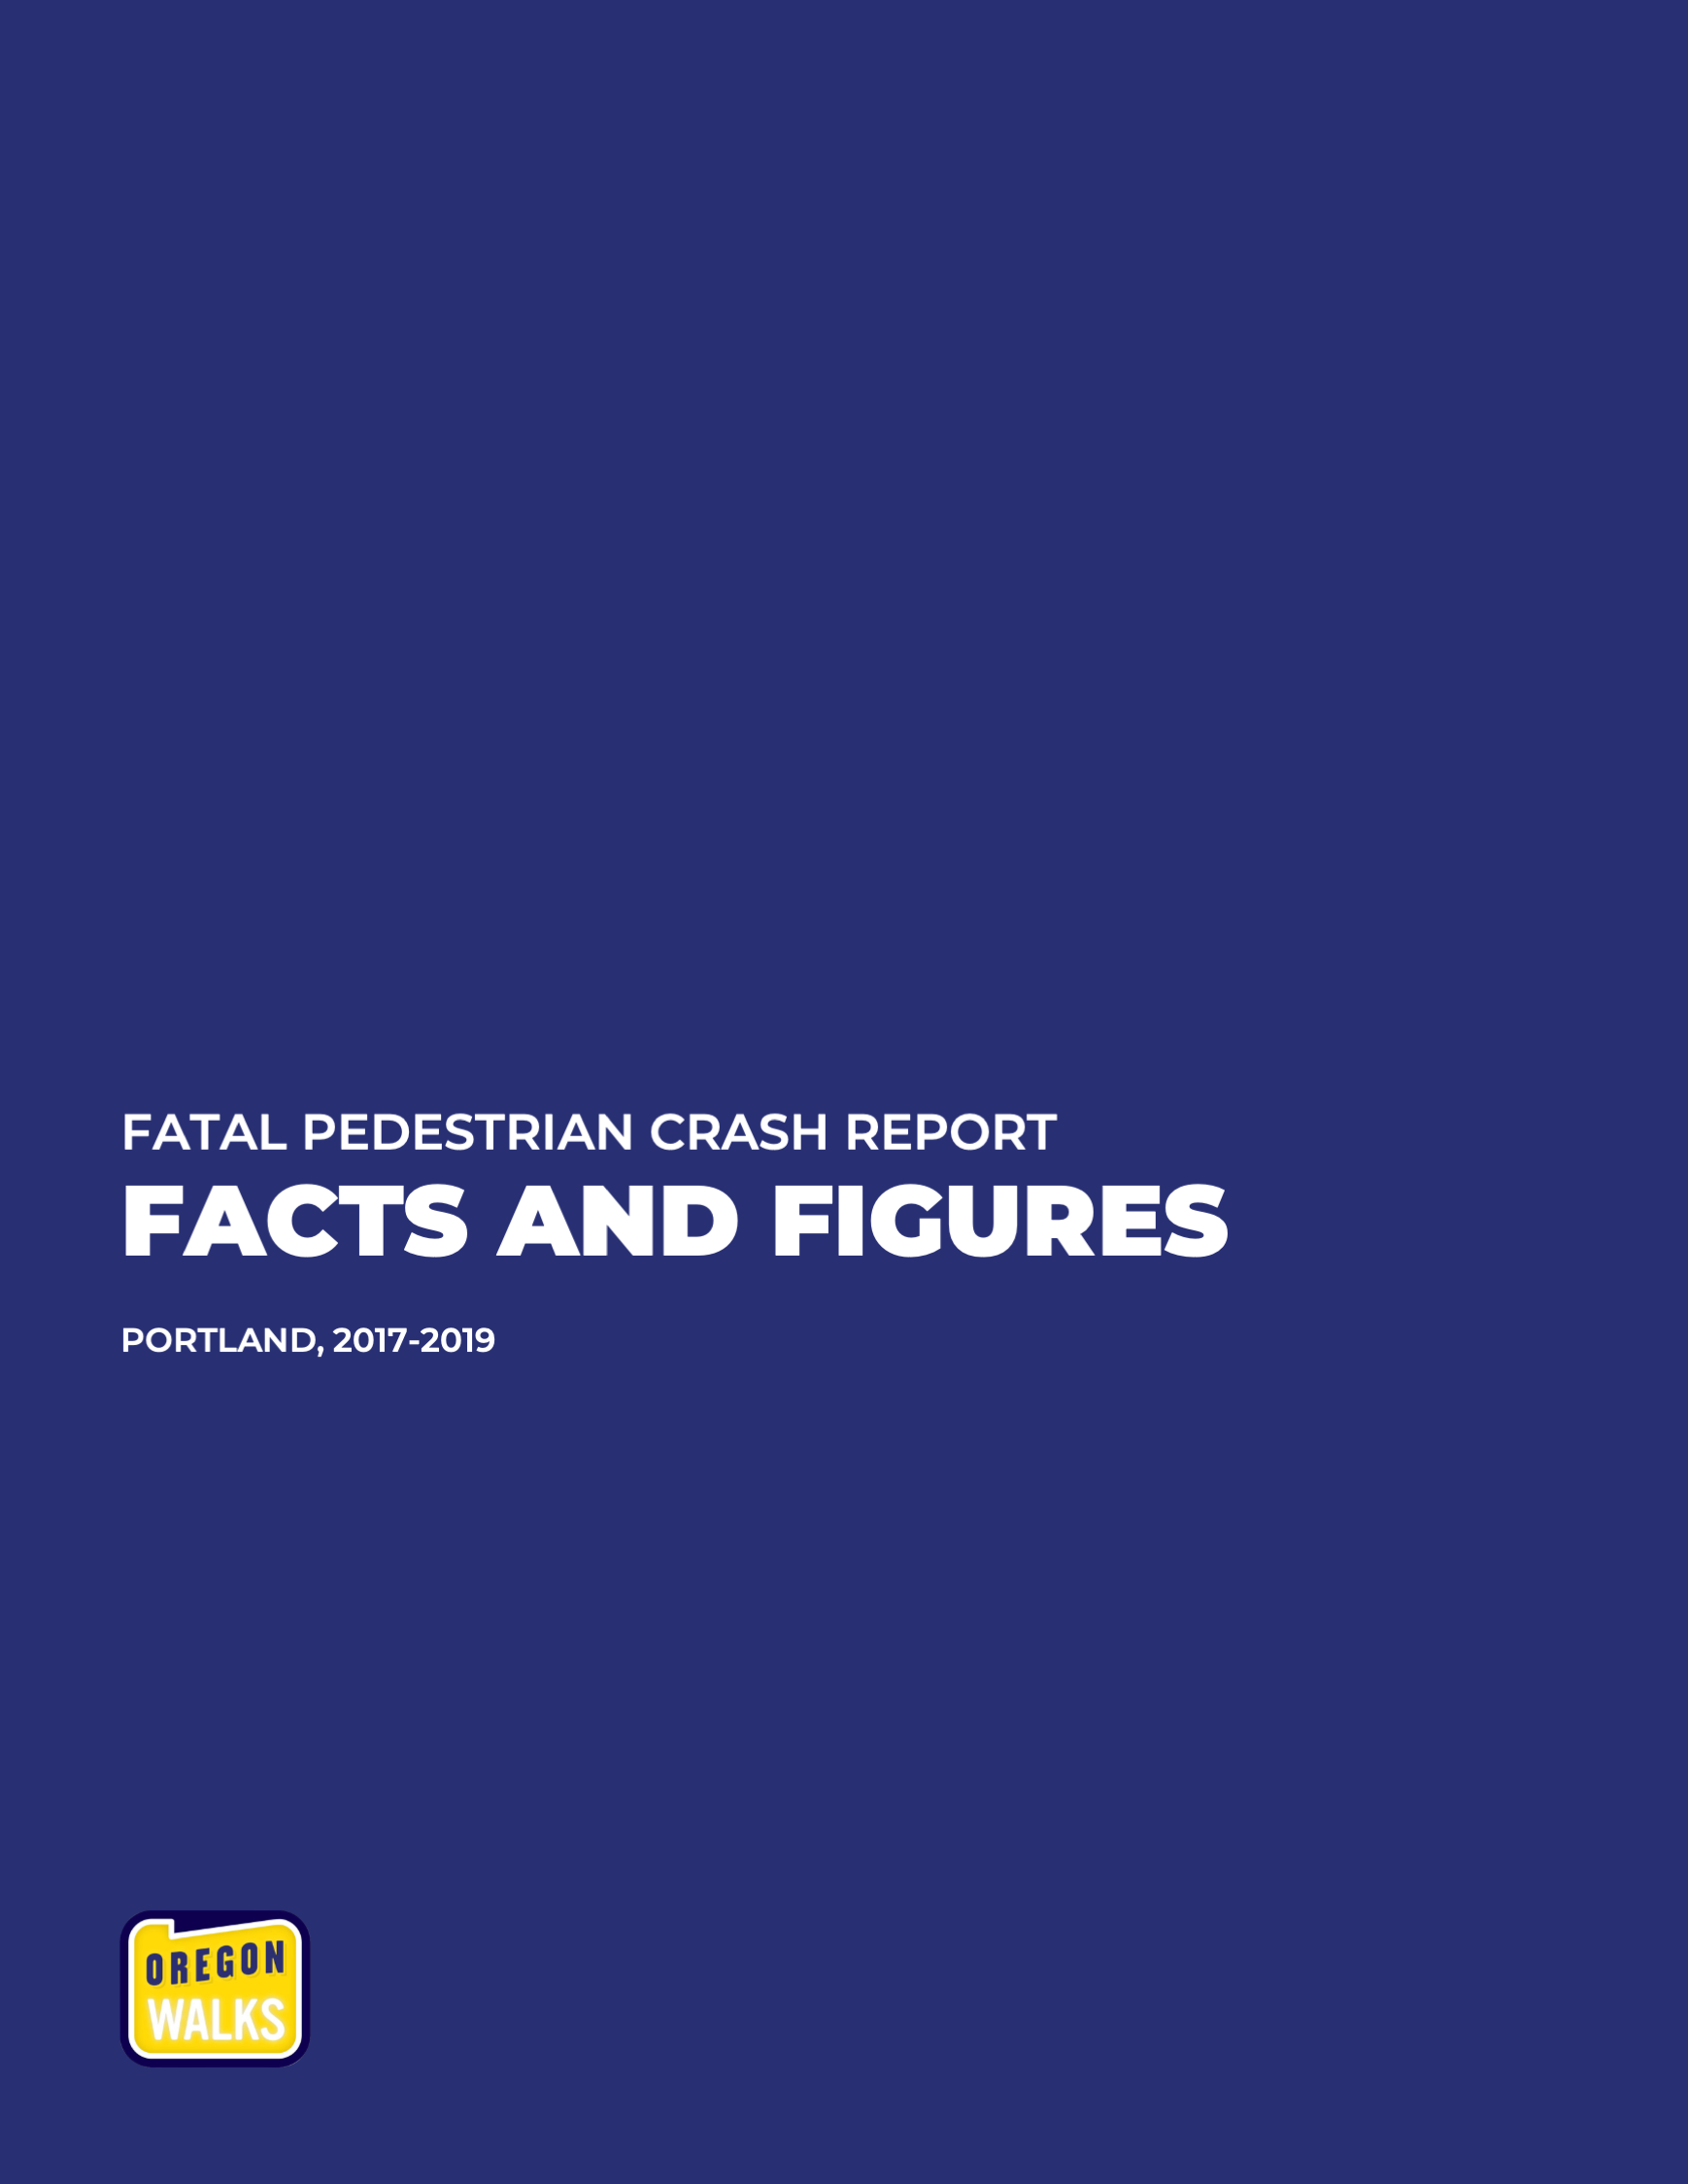 Facts and Figures Web Image UPDATED